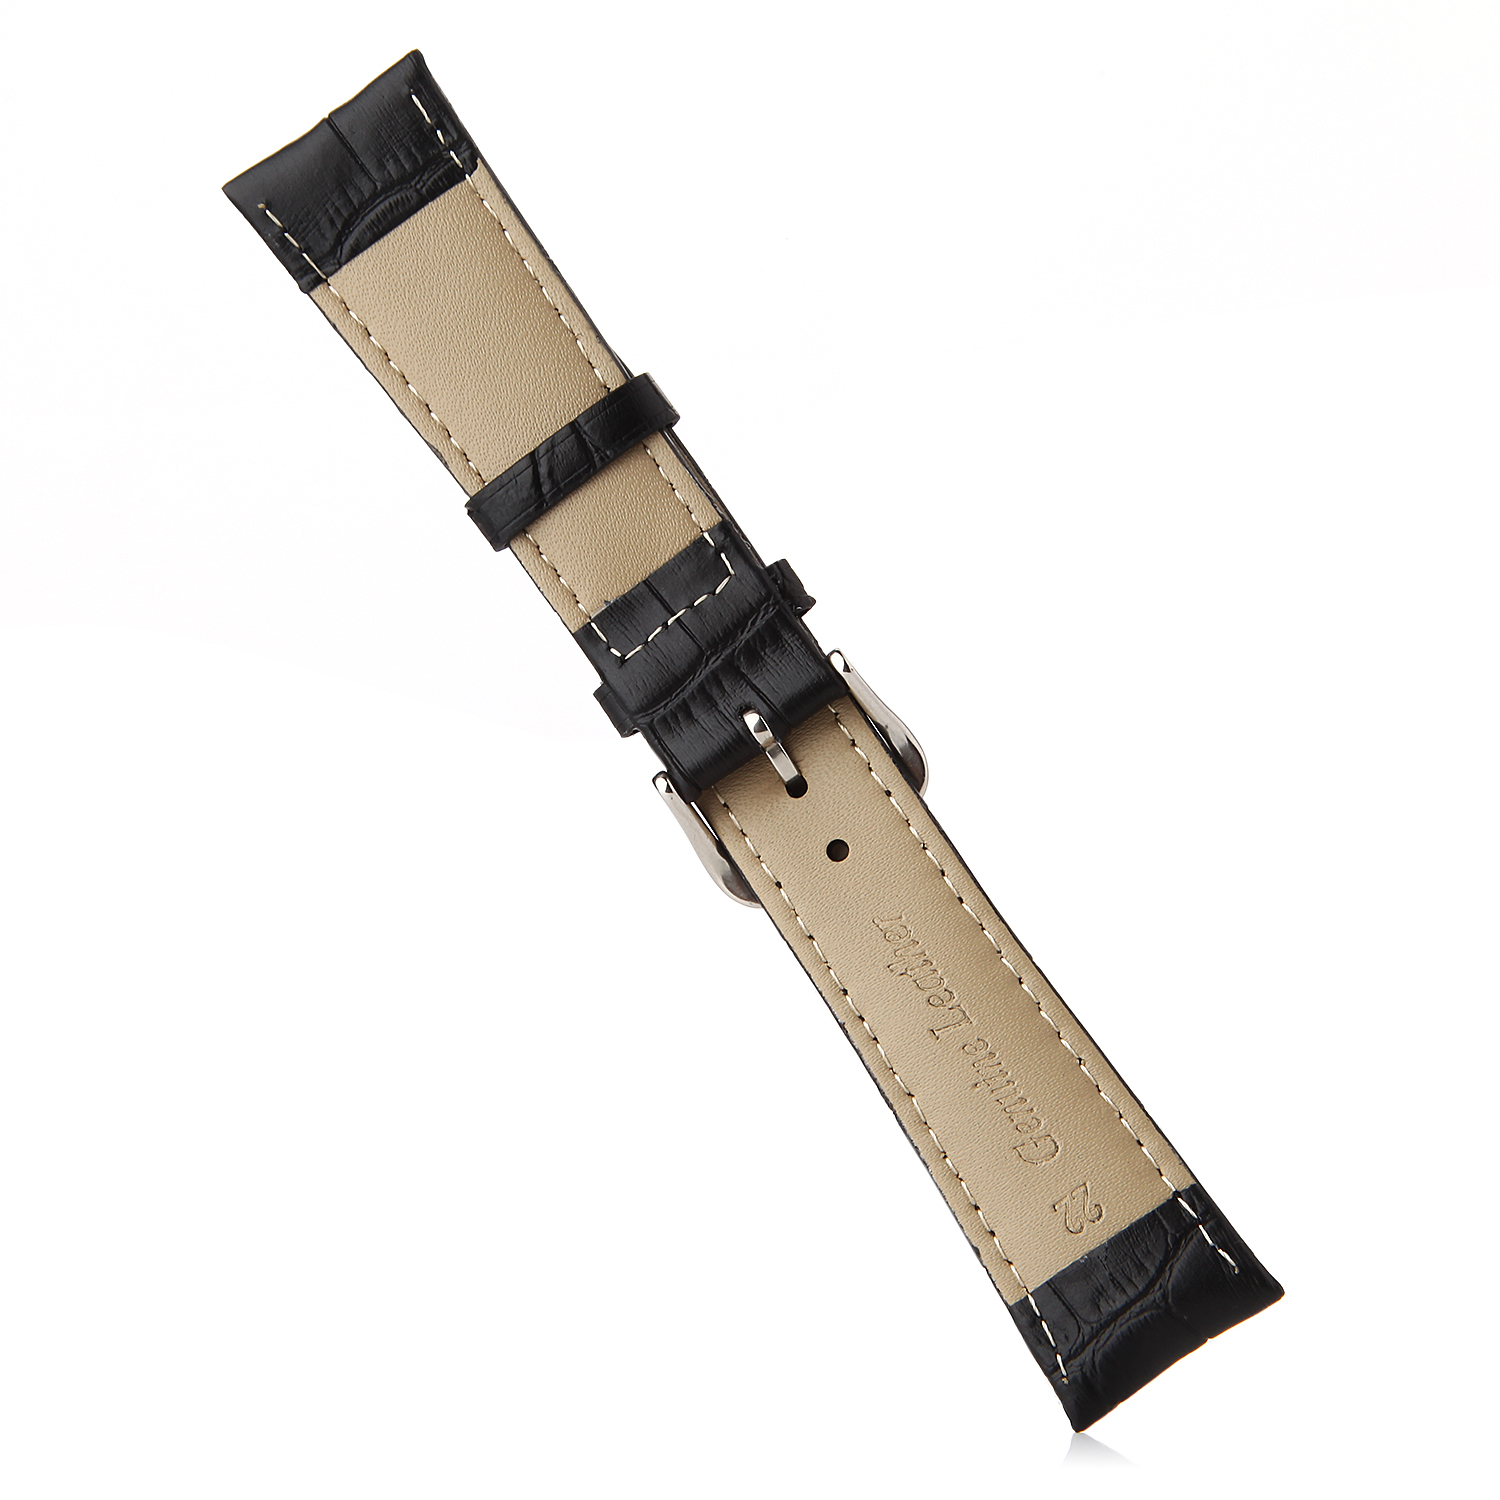 Crocodile Split Leather Buckle Watch Bands Straps For Apple Watch 38mm&42mm Black